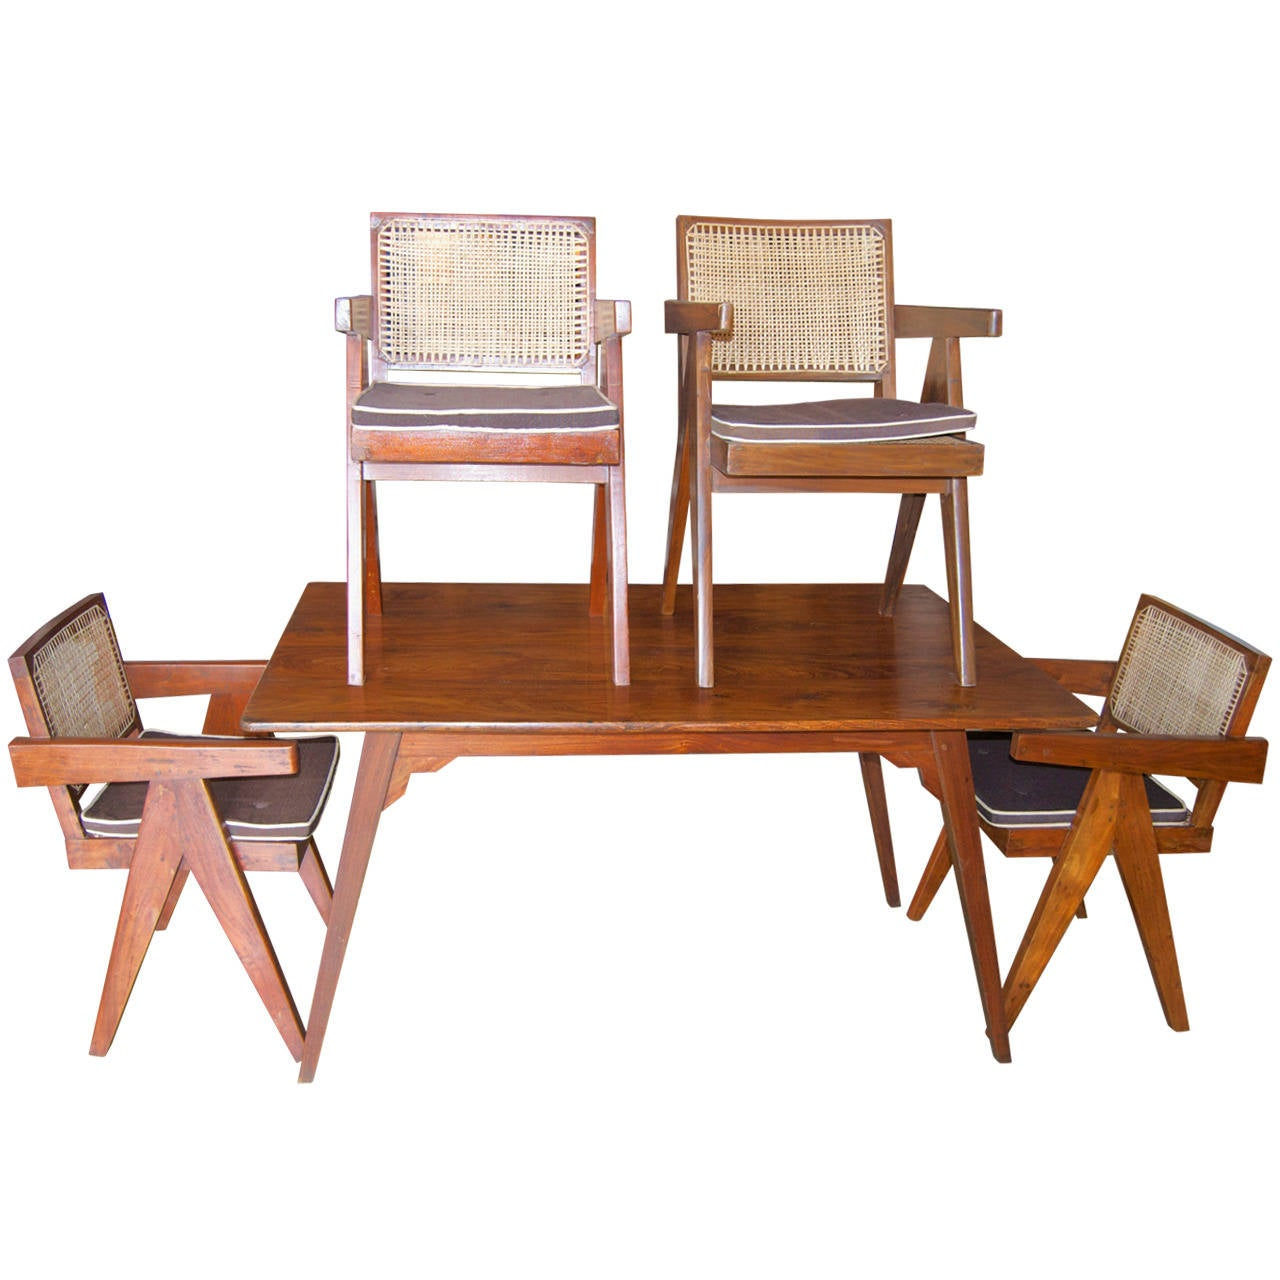 Pierre jeanneret quot chandigarh dining set at stdibs